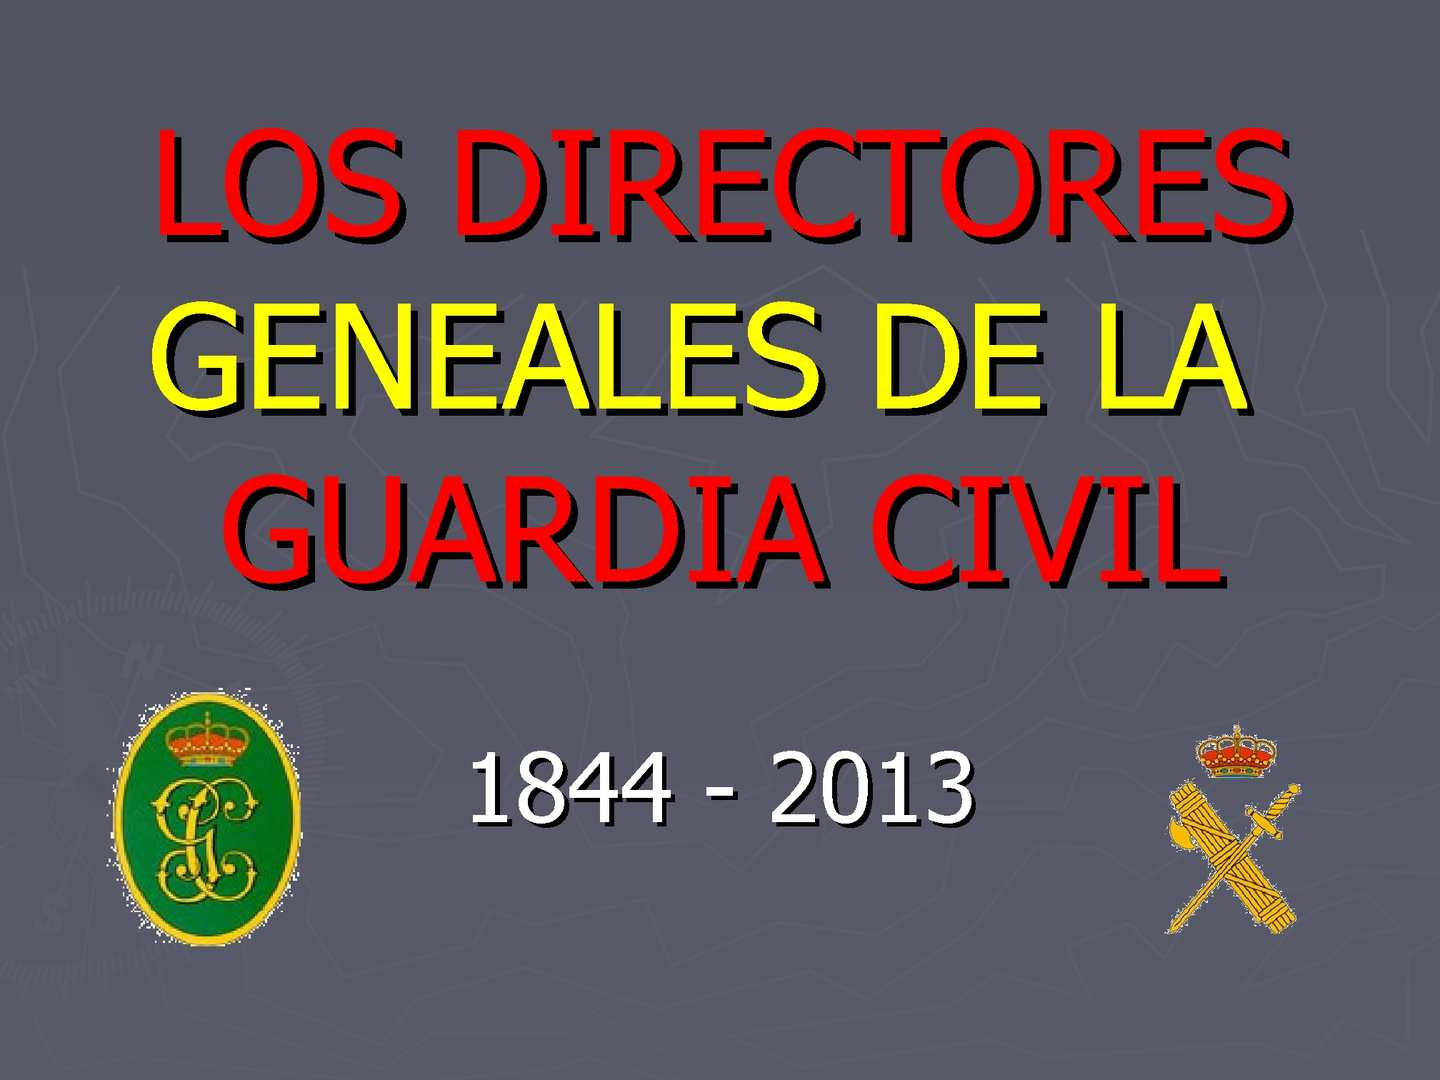 Libros De La Guardia Civil Calaméo Directores Generales De Las Guardia Civil 184 2013